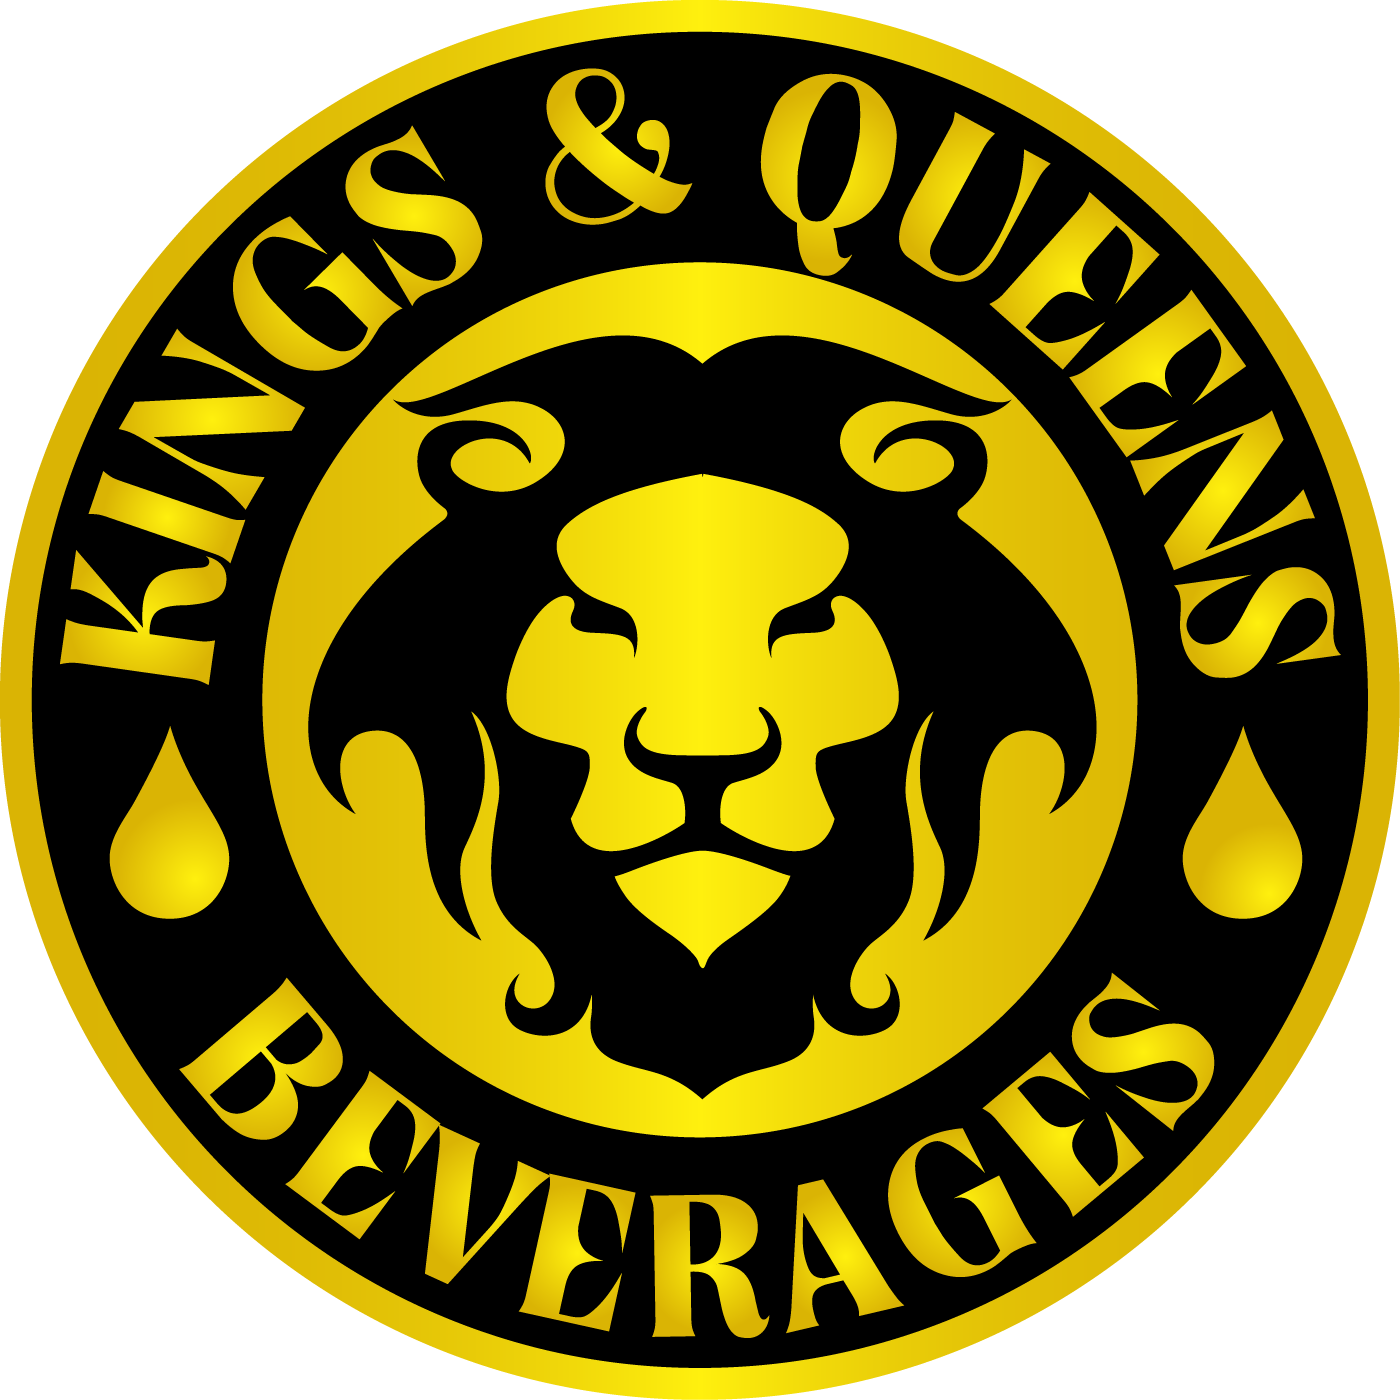 Kings & Queens Beverages